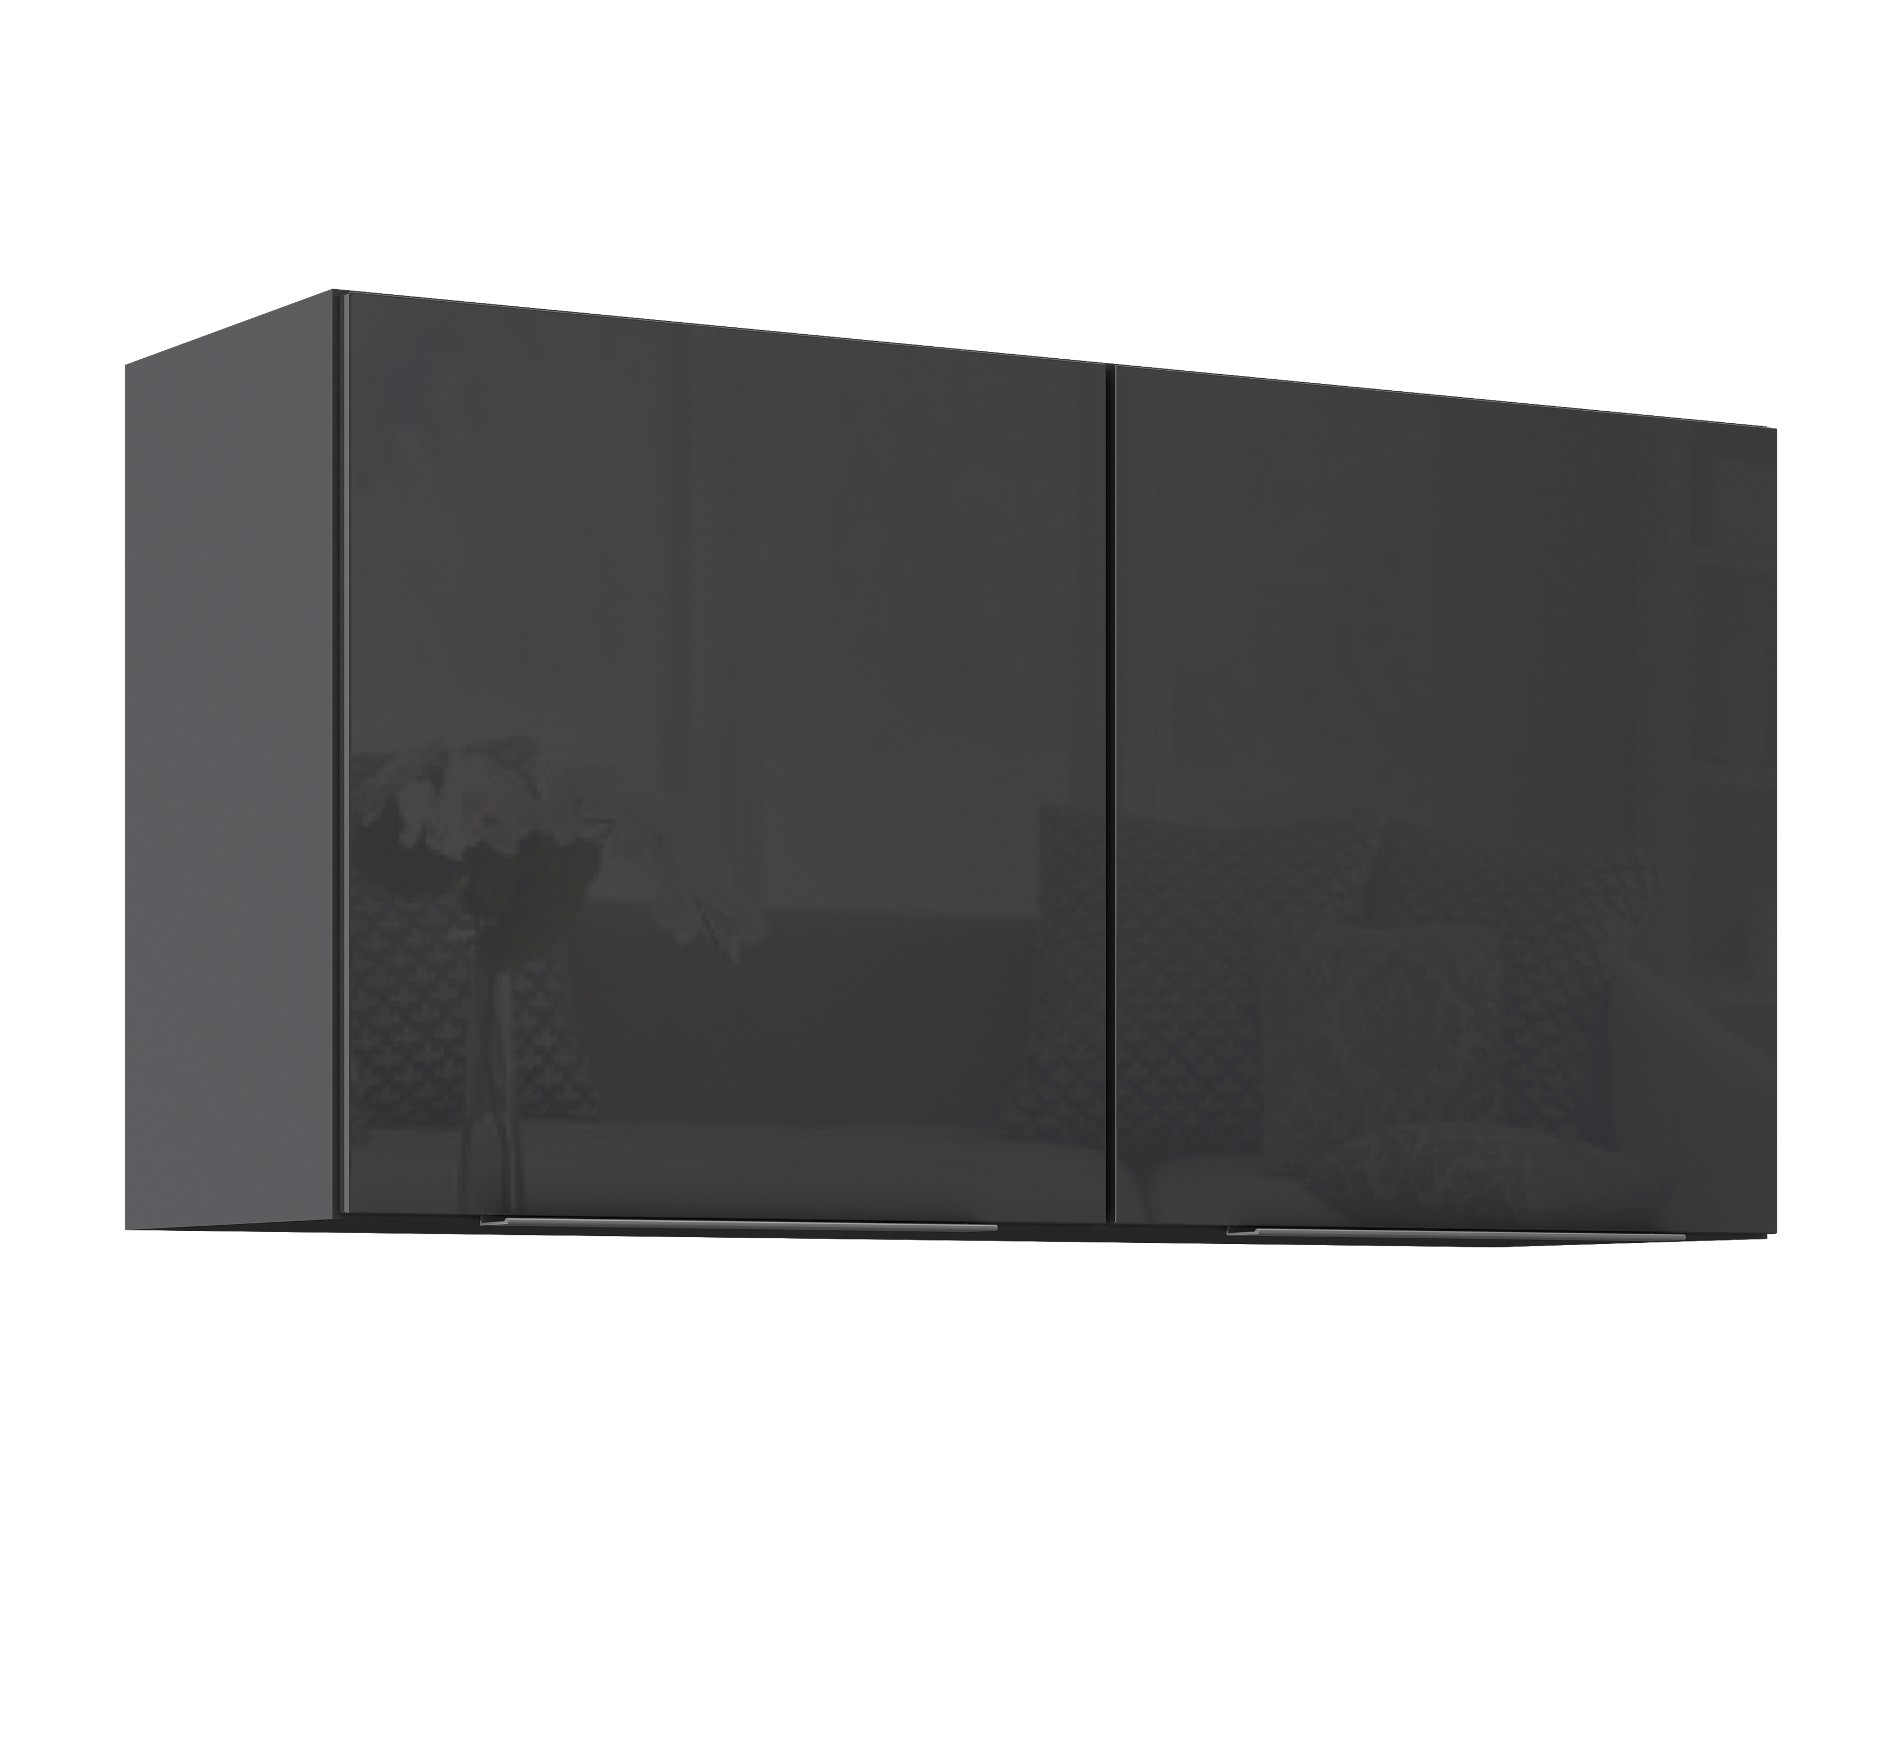 k chen h ngeschrank hamburg 2 t rig breite 100 cm hochglanz grau graphit k che hamburg. Black Bedroom Furniture Sets. Home Design Ideas